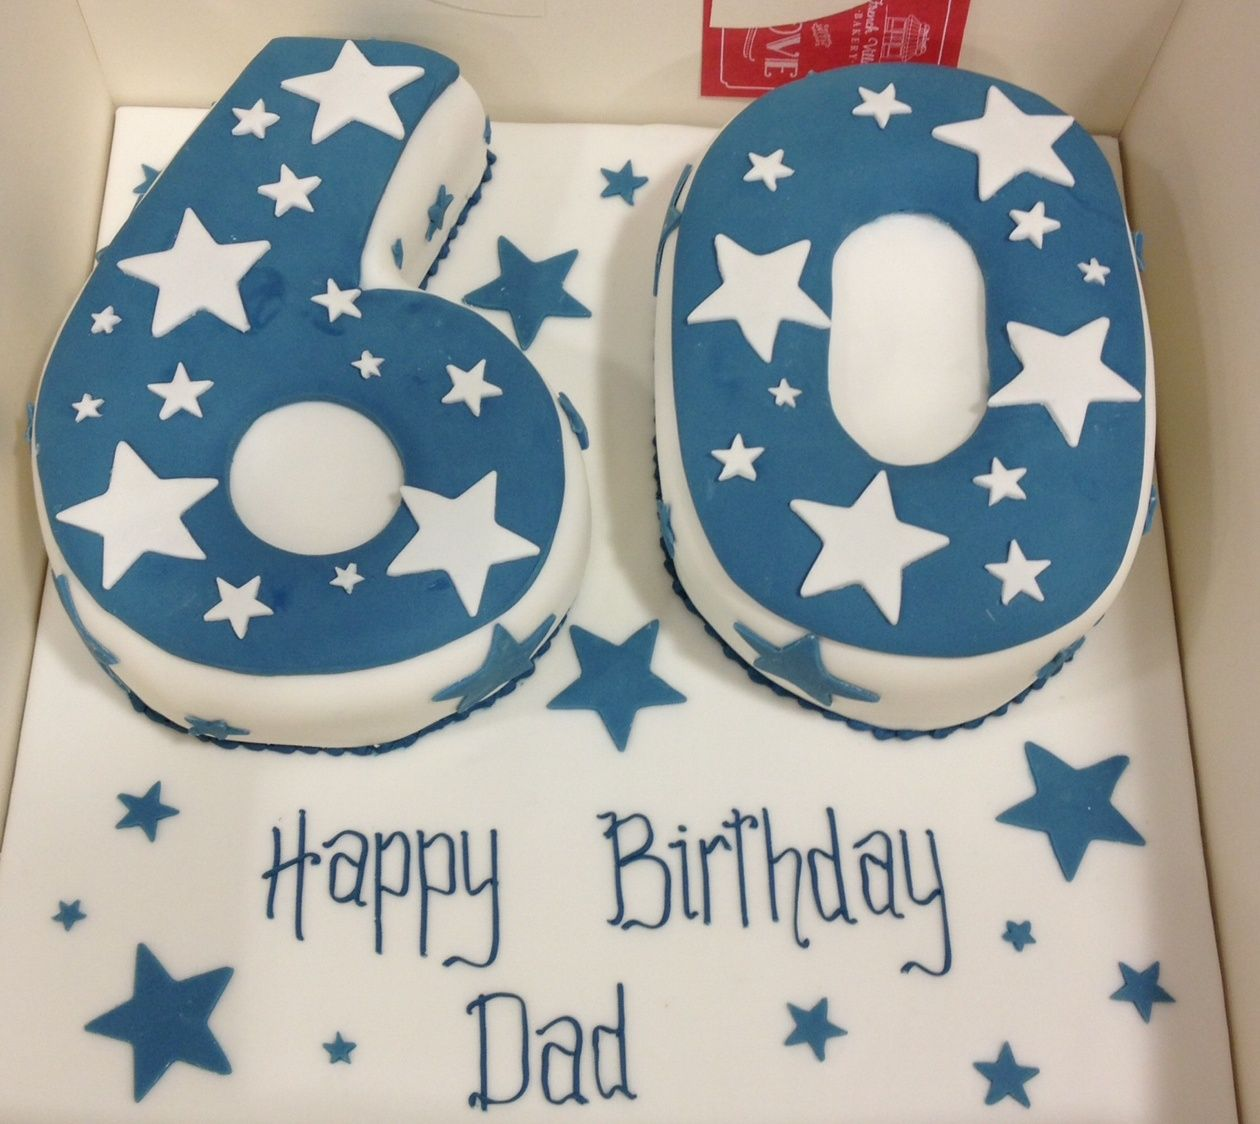 60 Shaped Blue And White Star Cake